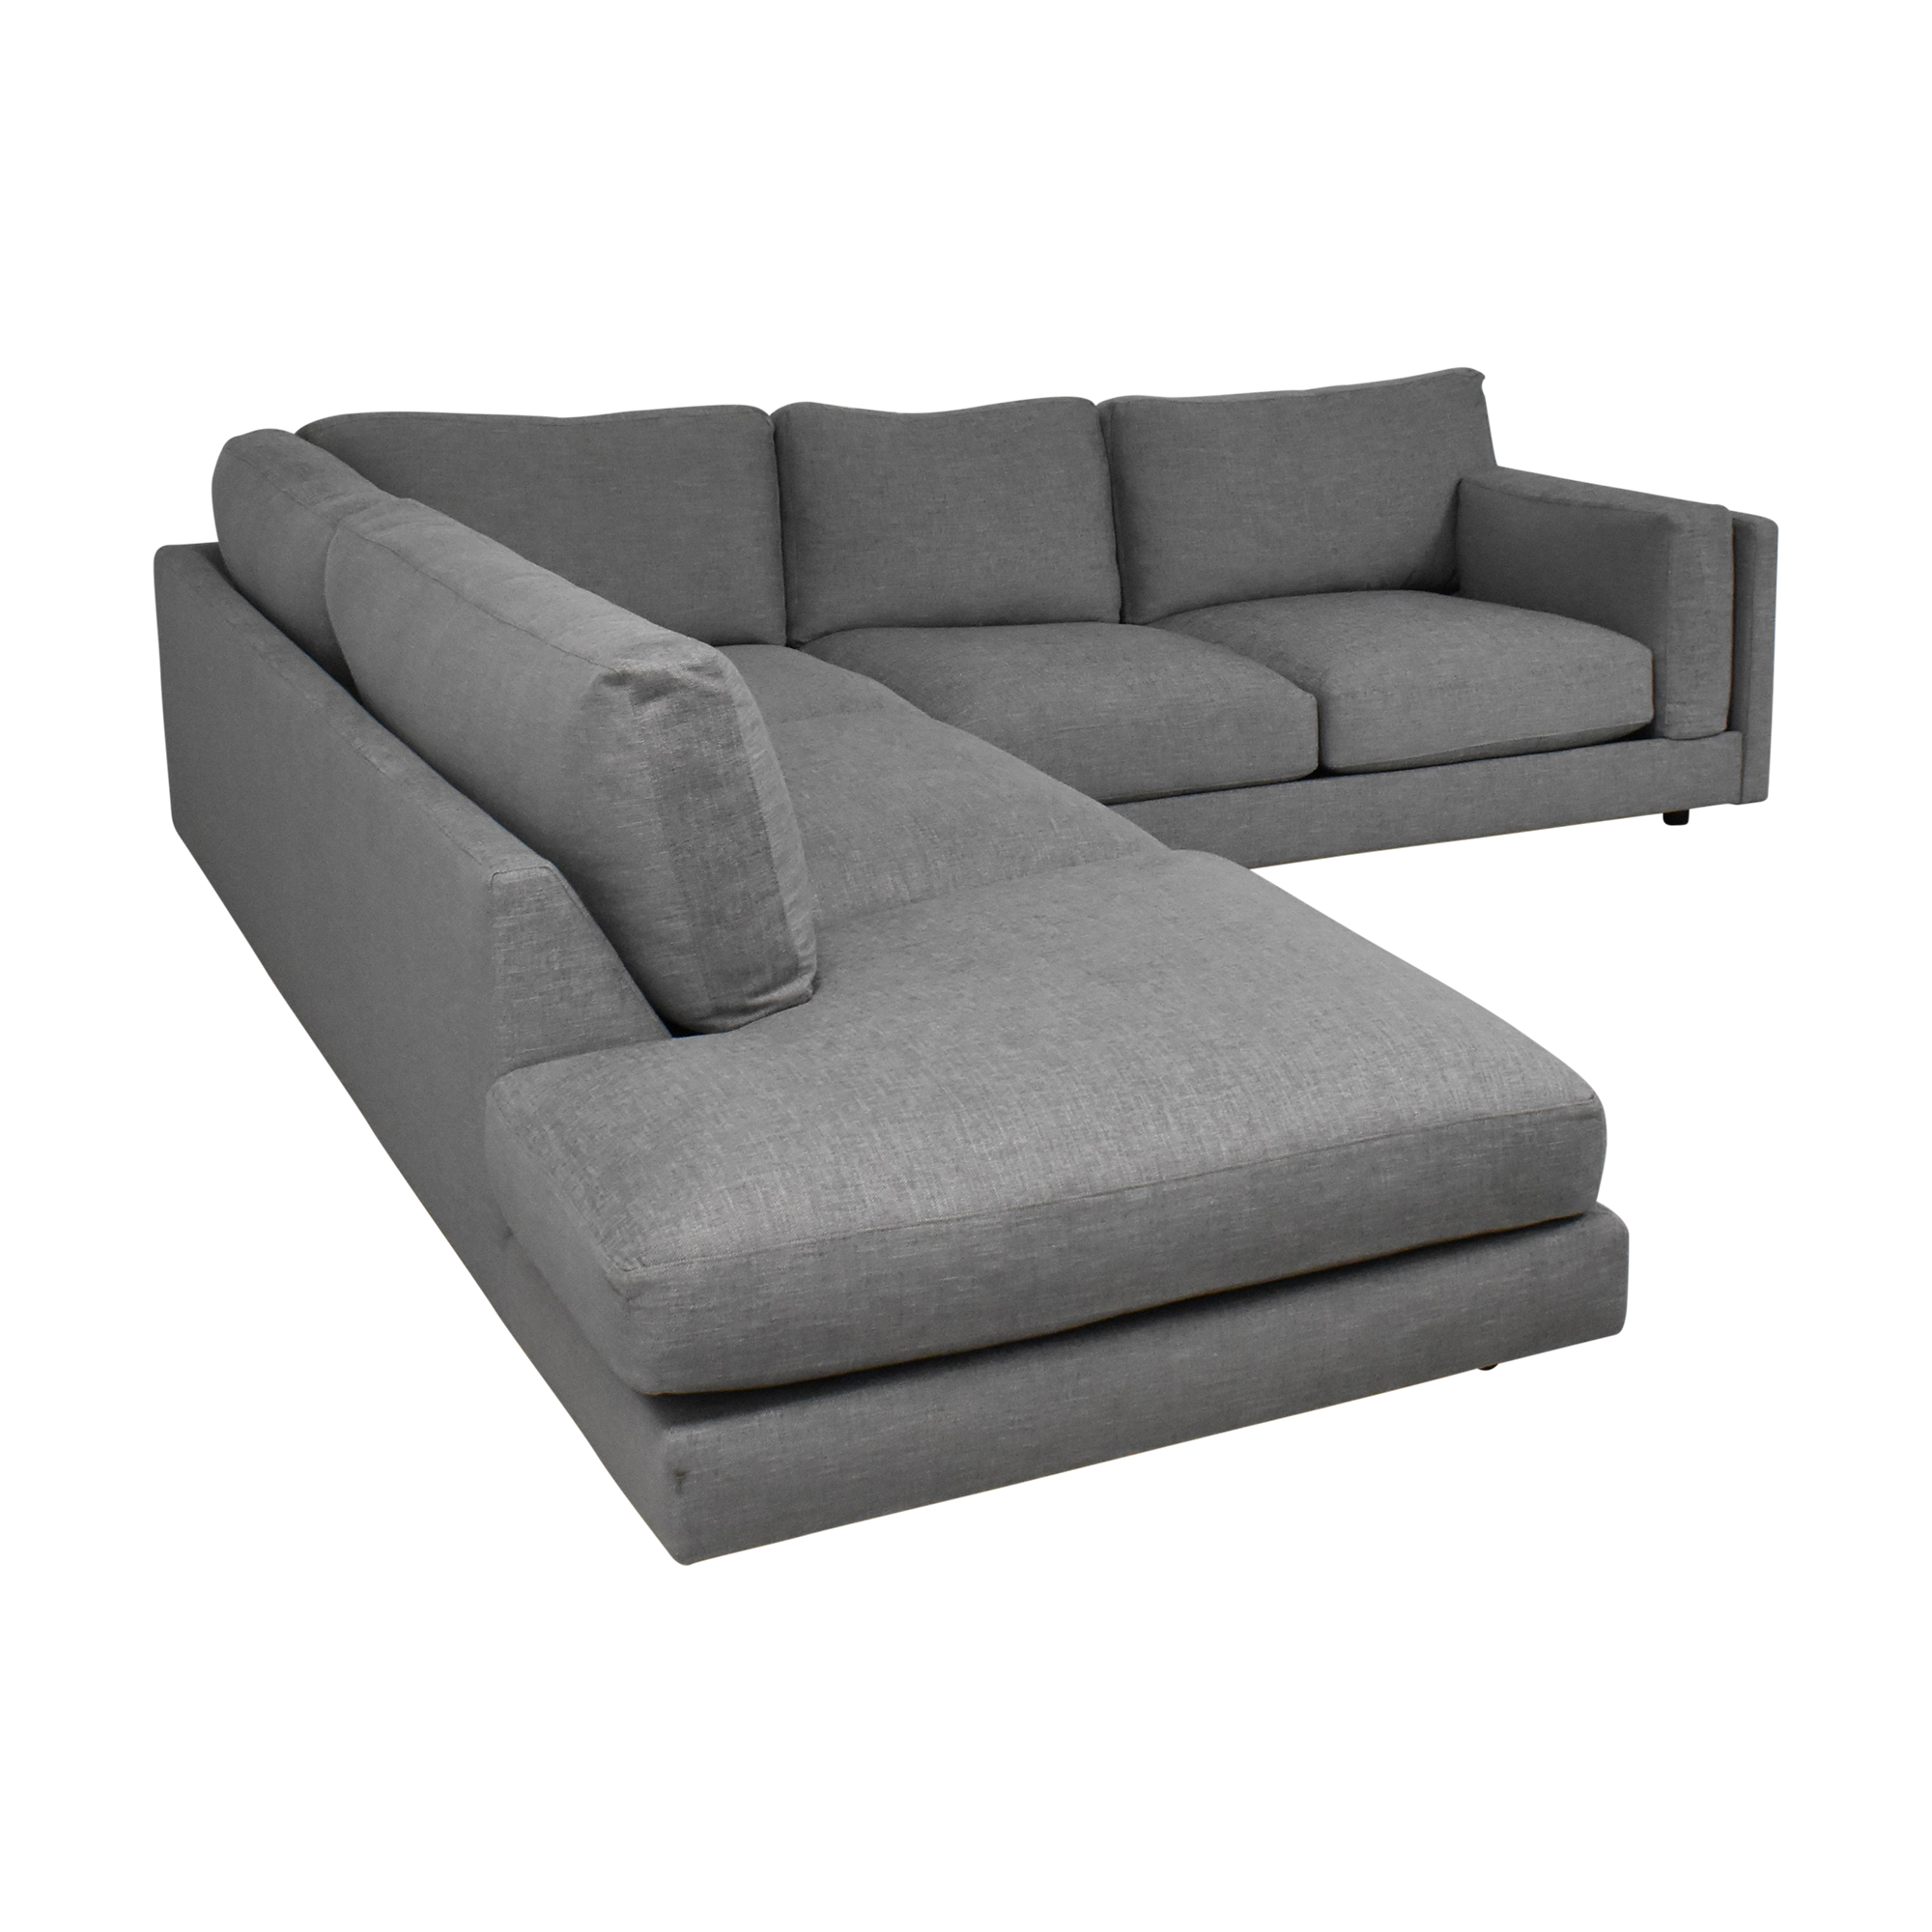 BenchMade Modern BenchMade Modern Skinny Fat Sectional With Bumper Sofas